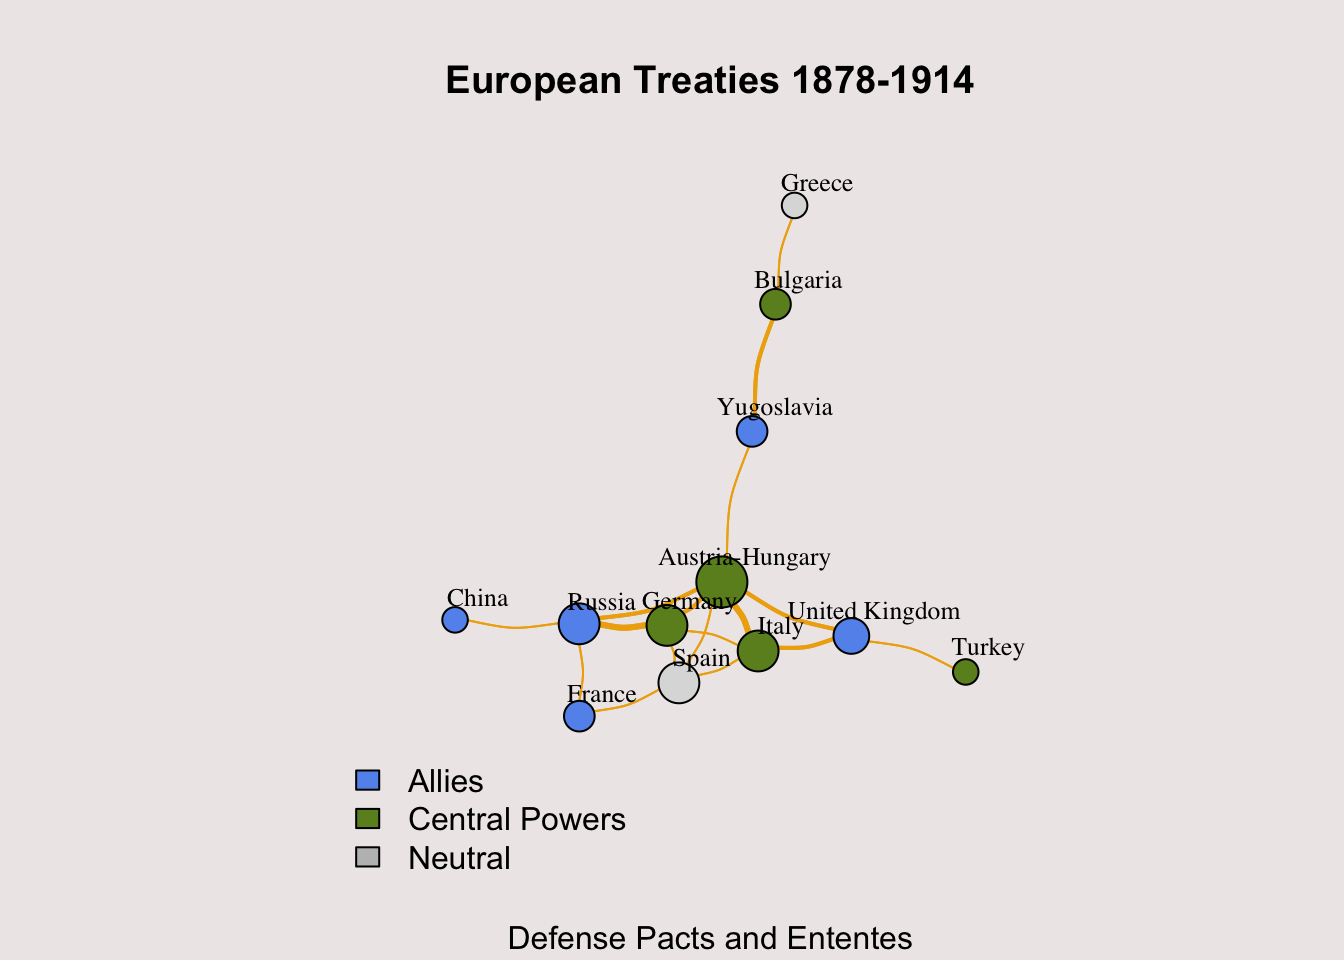 Visualizing European WW1 Defense Treaties with iGraph